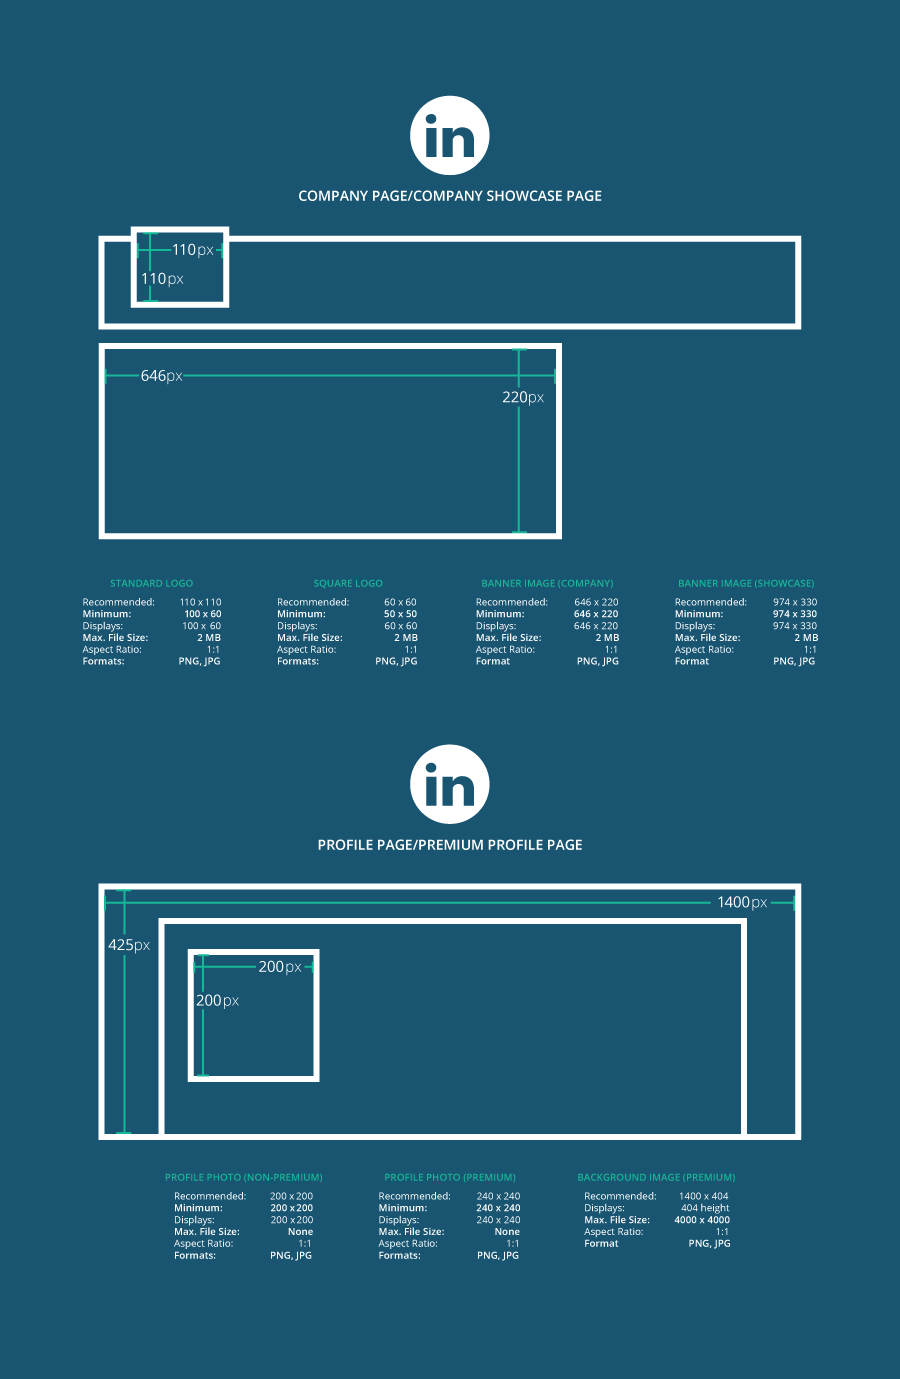 LinkedIn image sizes and dimensions for 2016